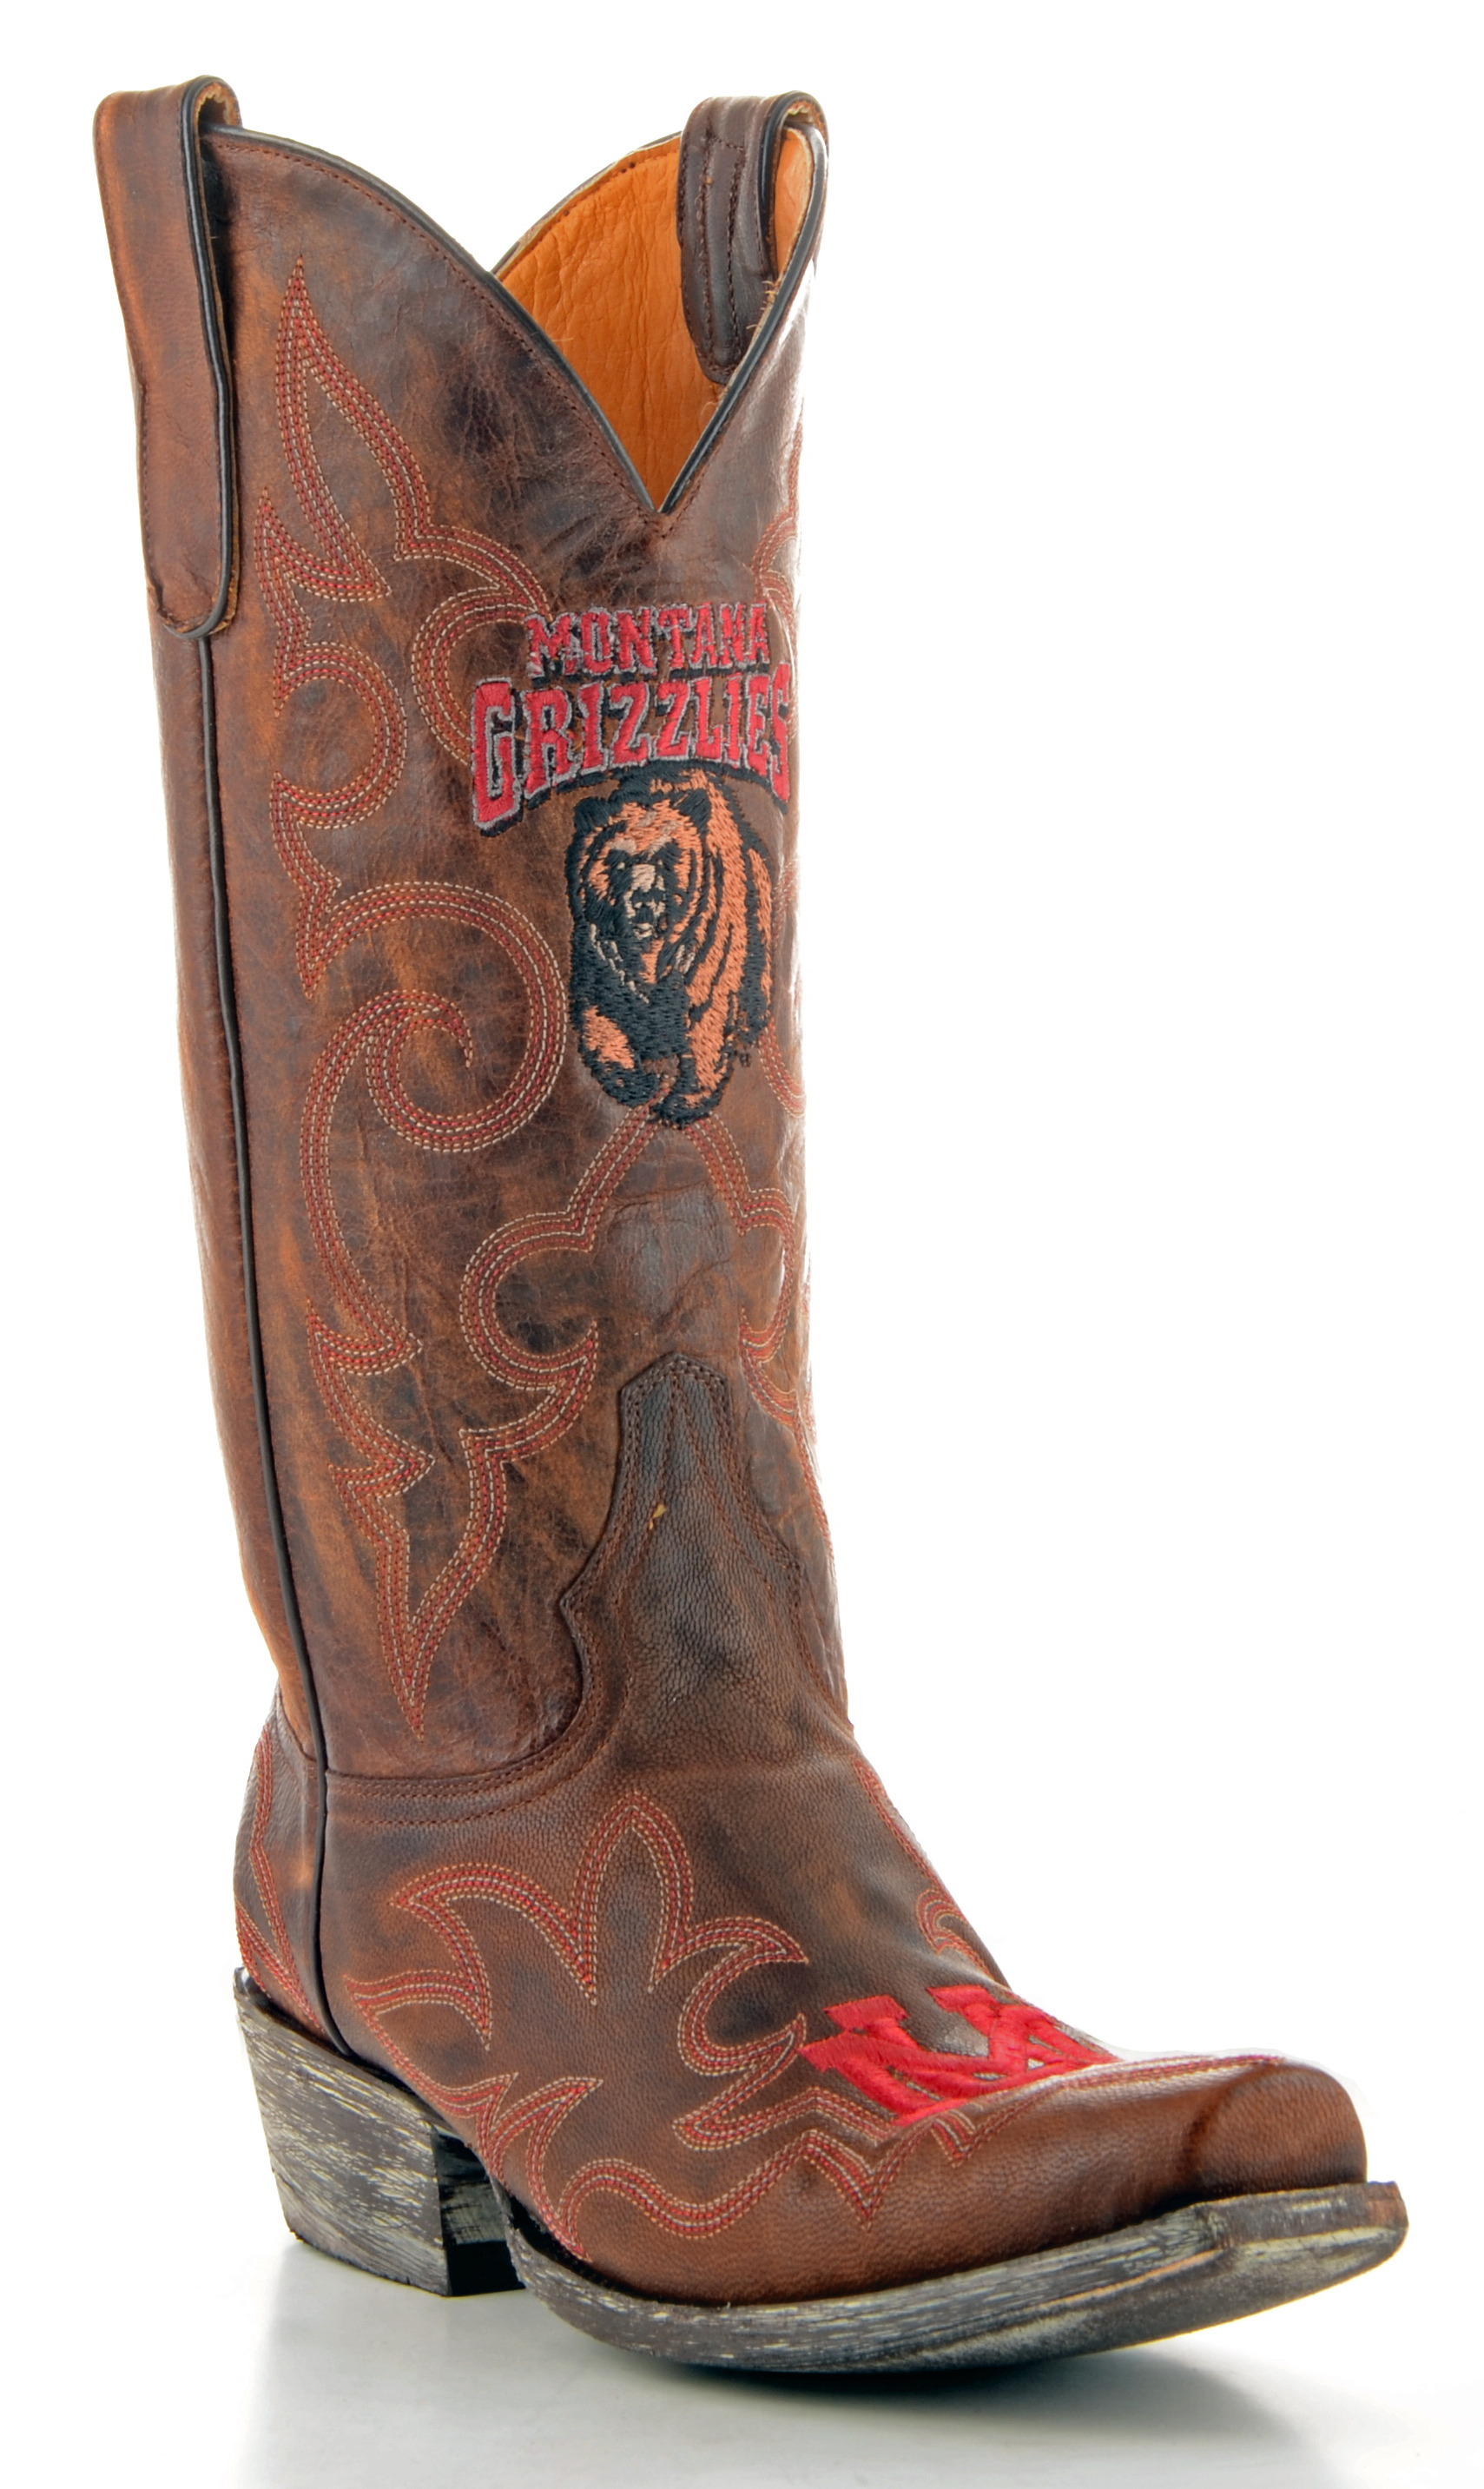 Gameday Boots Mens Leather Montana Cowboy Boots by GameDay Boots